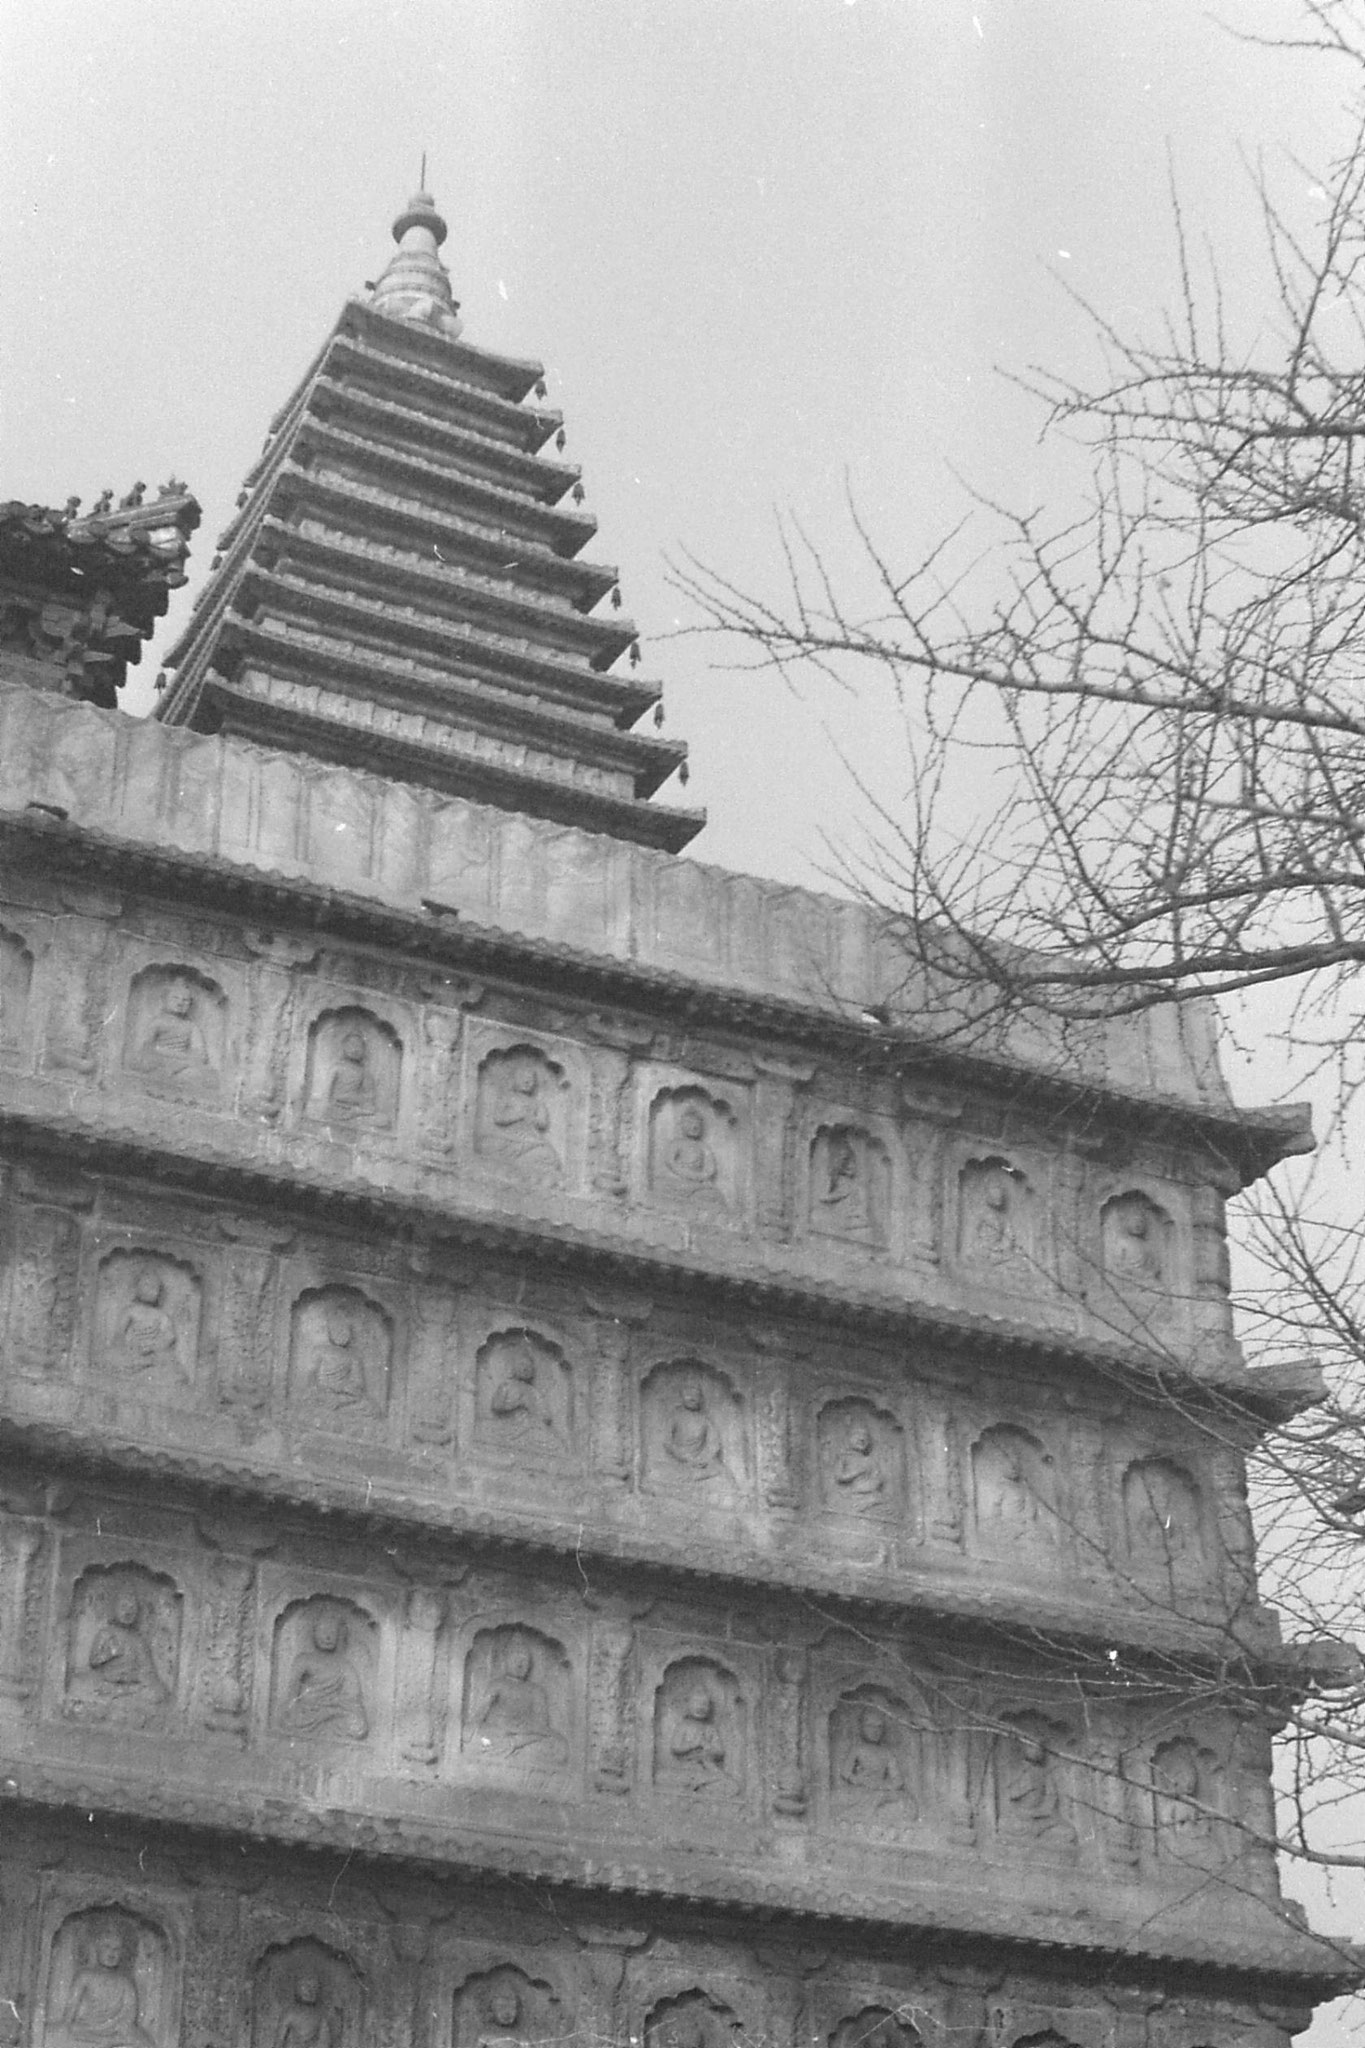 29/11/1988: Wutasi - Five Pagoda Temple